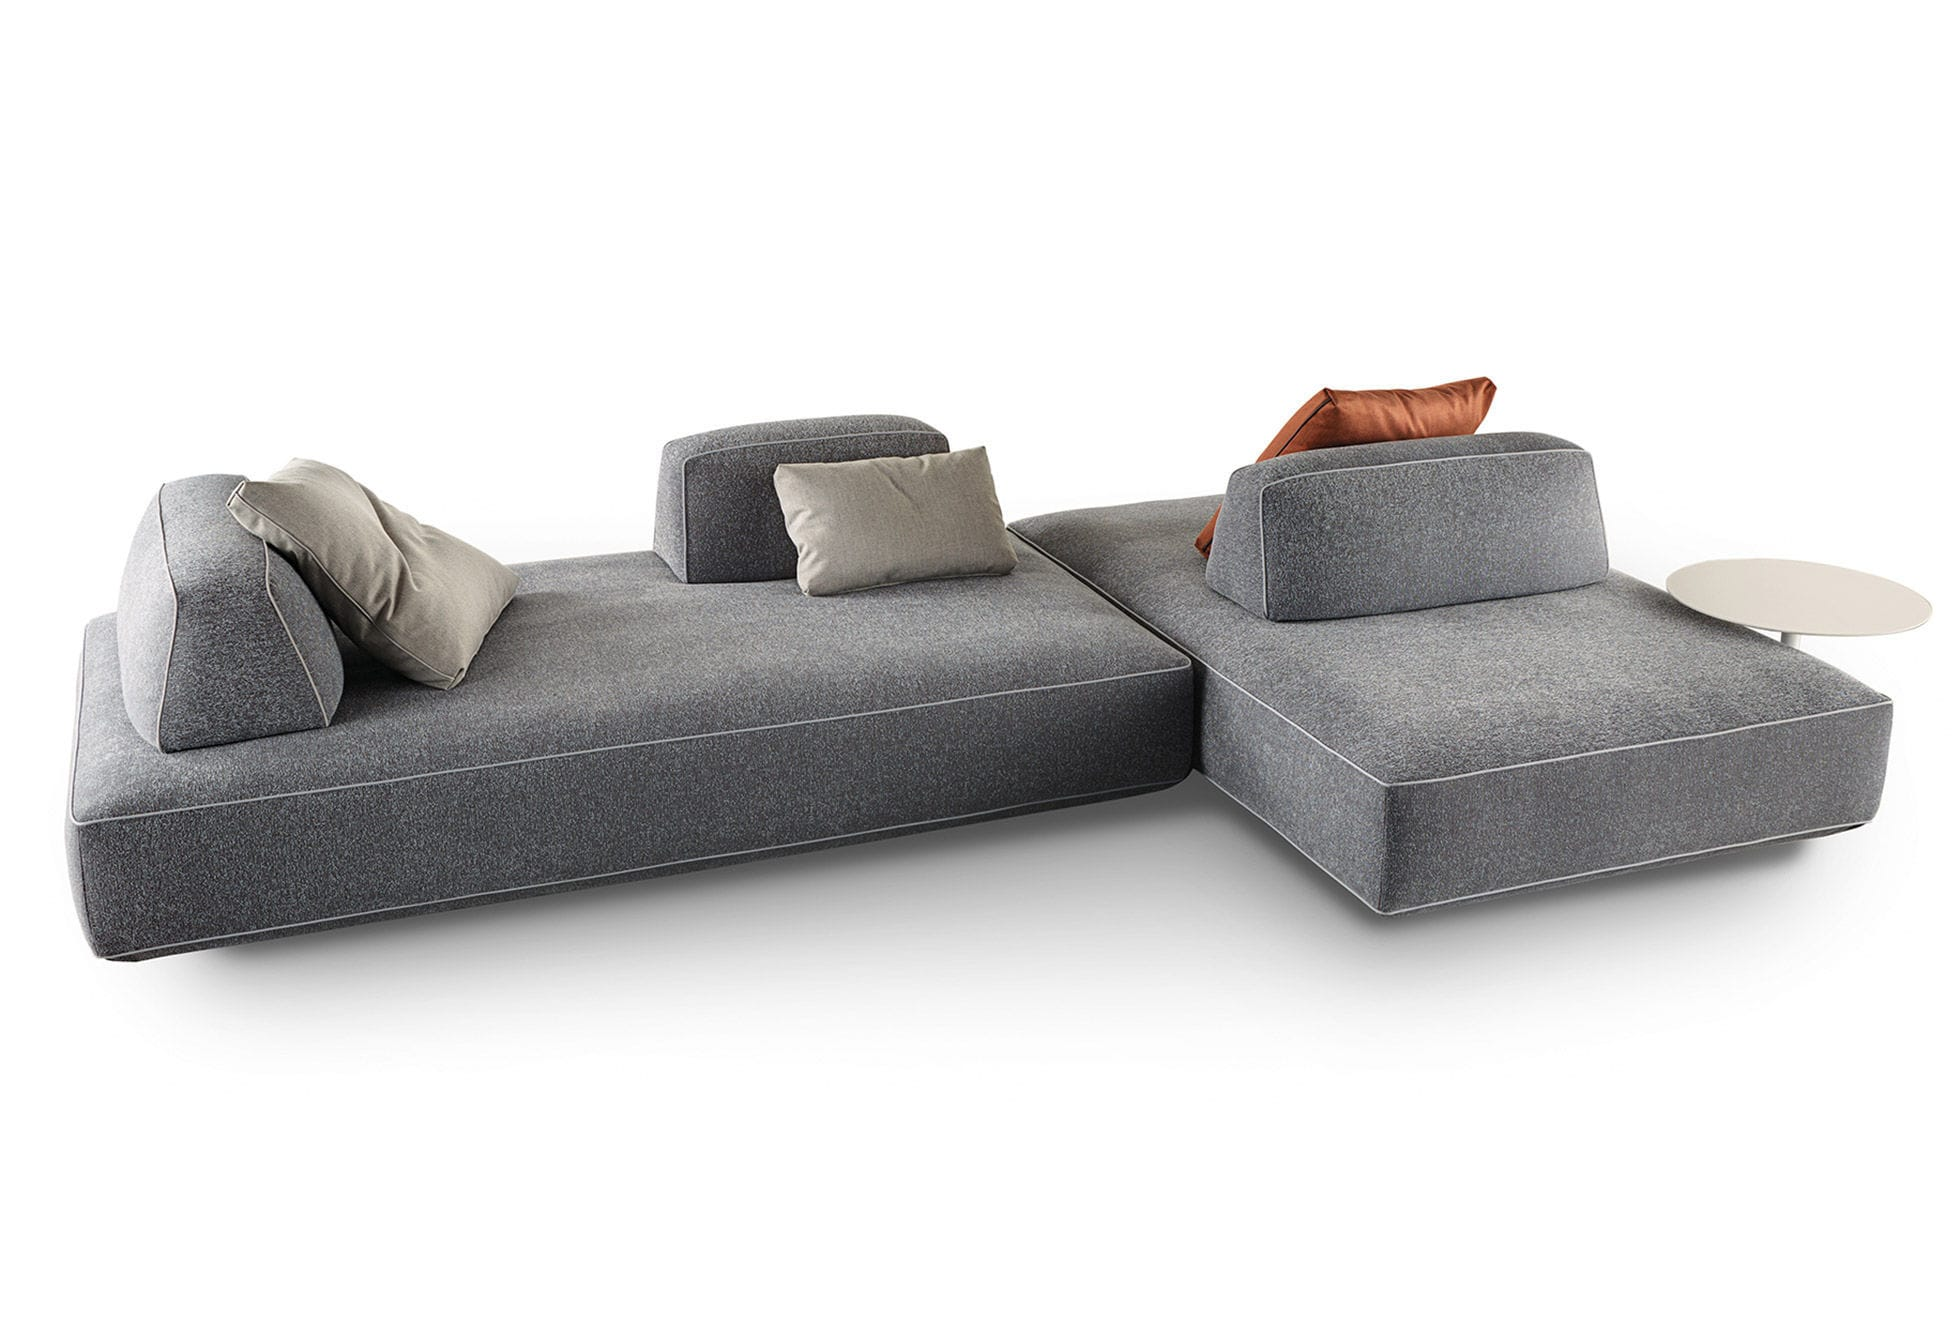 Modular Sofa Contemporary Fabric Beige